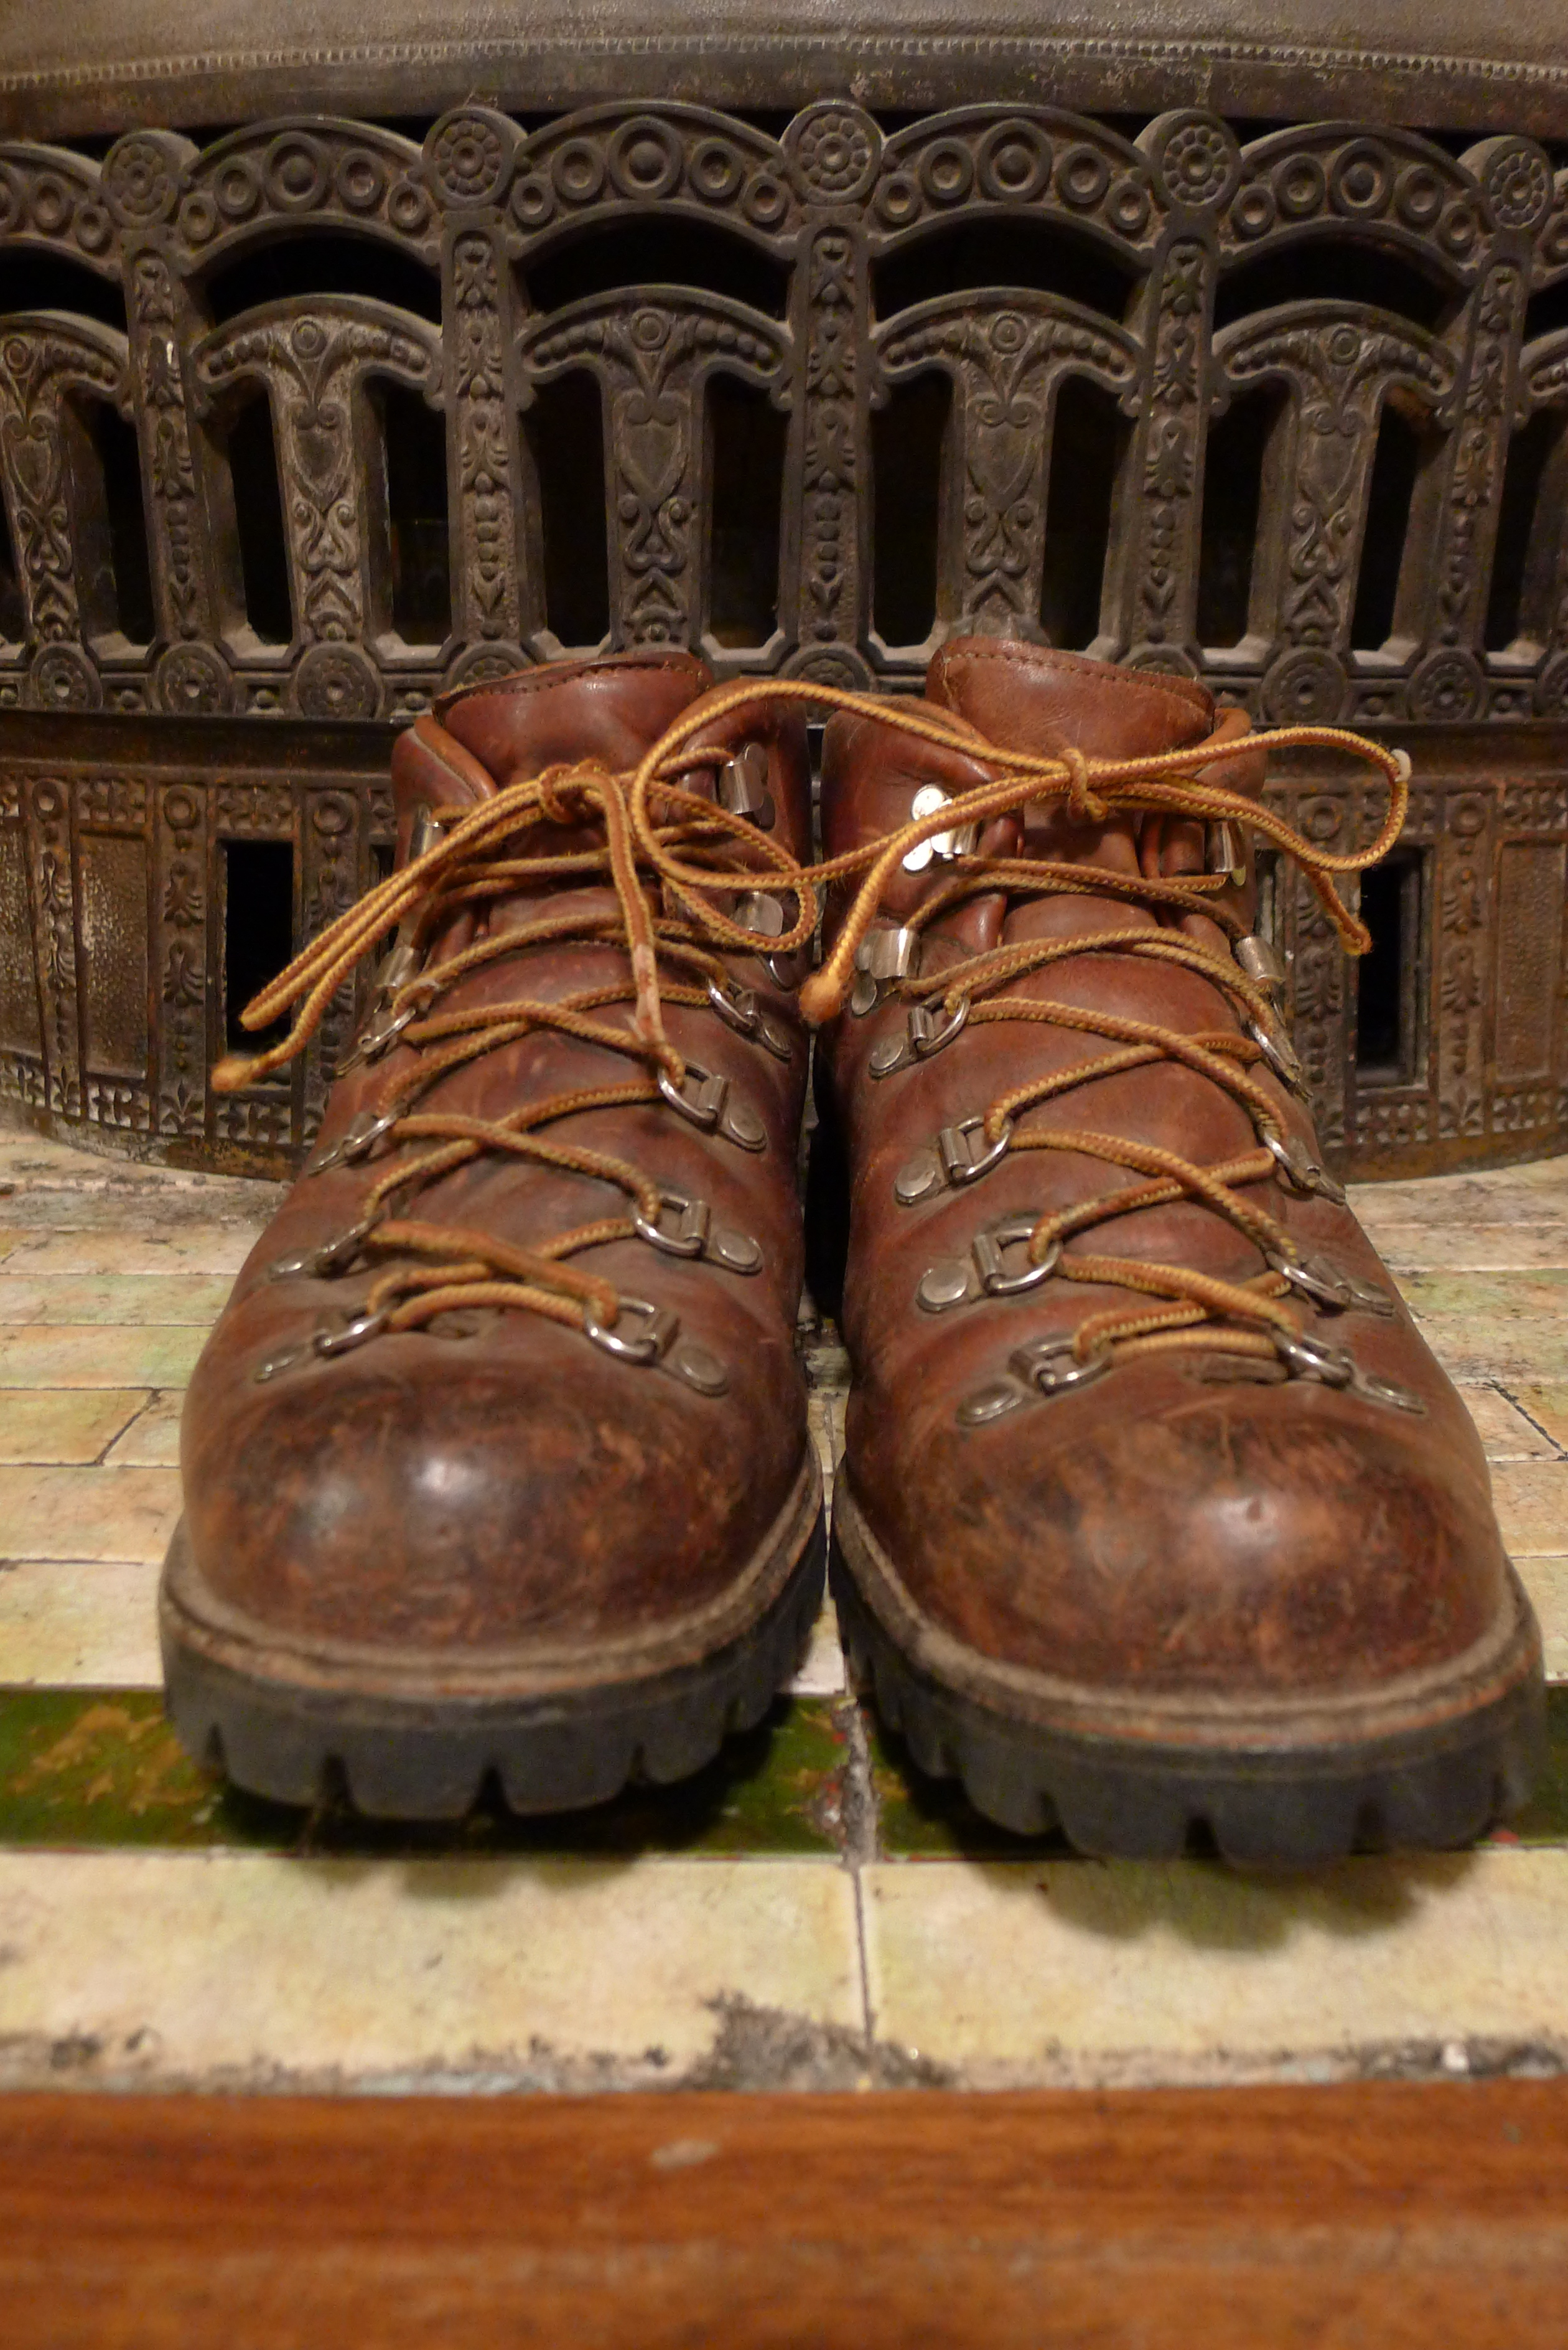 Danner 6490 Hiking Boots | Basecamp Vintage Archives